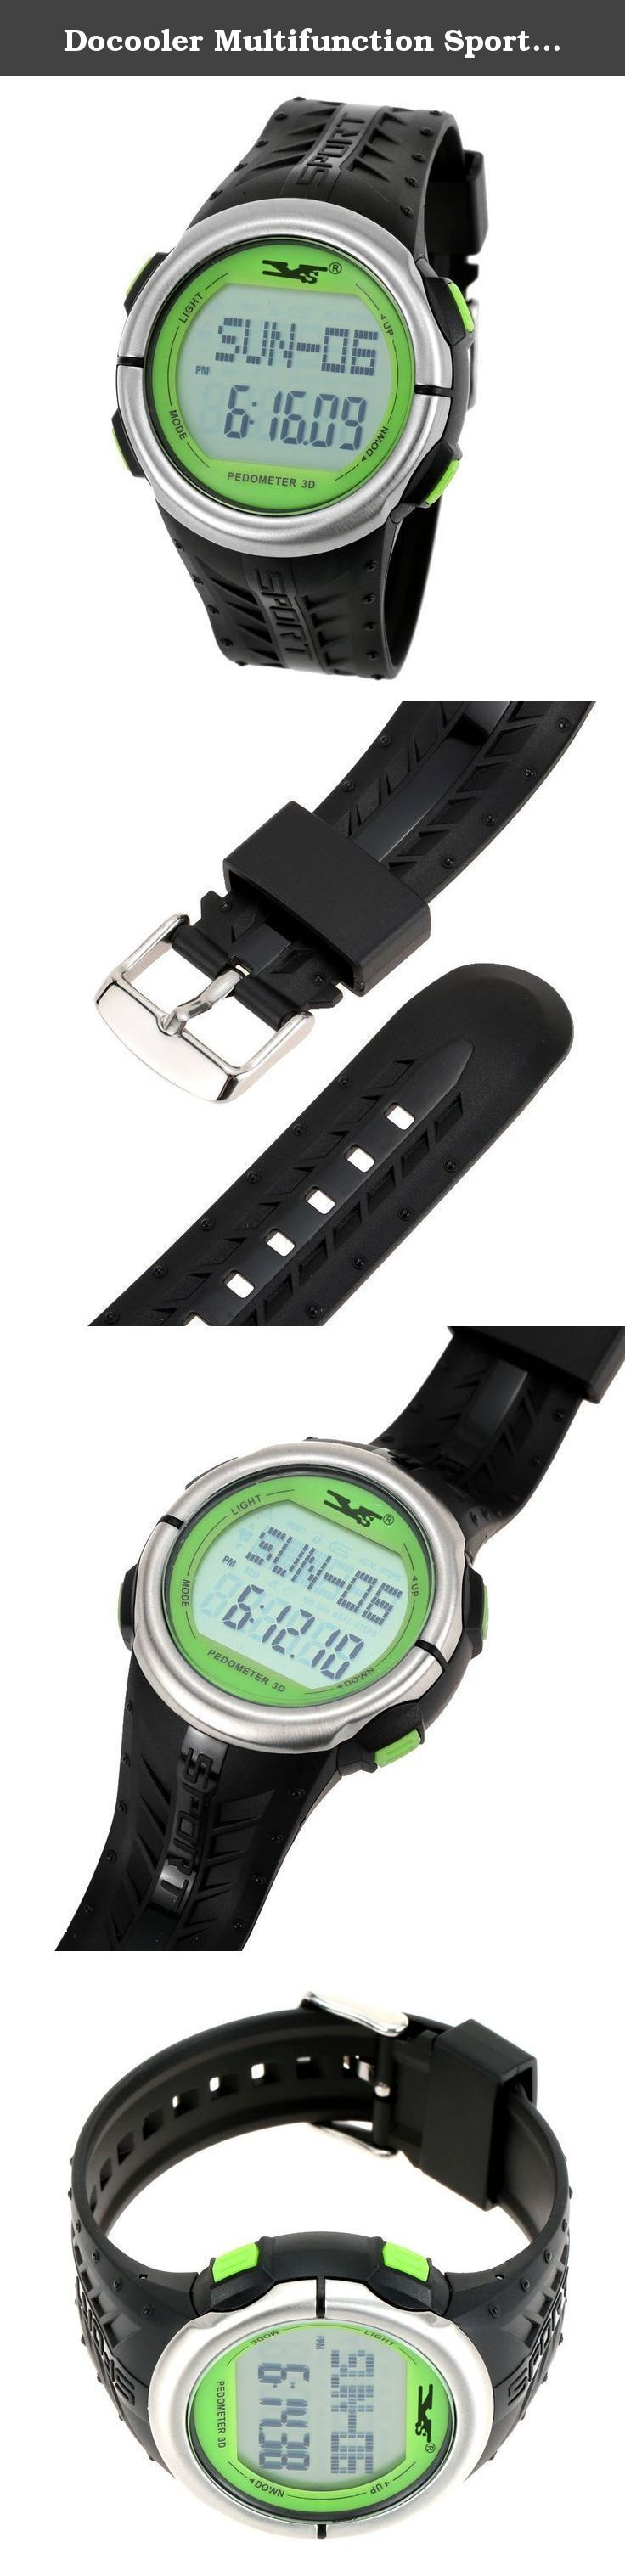 Docooler Multifunction Sports Pulse Watch Heart Rate Monitor Fitness Exercise Watch Pedometer Calorie Chronograph Stopwatch. This multi-function wrist watch can meet your various needs. Apart from being able to be used as an ordinary watch, it is also designed with the functions of pedometer and monitoring your heart rate. It is useful to help you keep fit. Features: Normal Time: Hour, Minutes, Second, Day and Weekday; 12/24 hr format; Calendar (Yr 2000-2099). 2-set alarm: Daily alarm &...